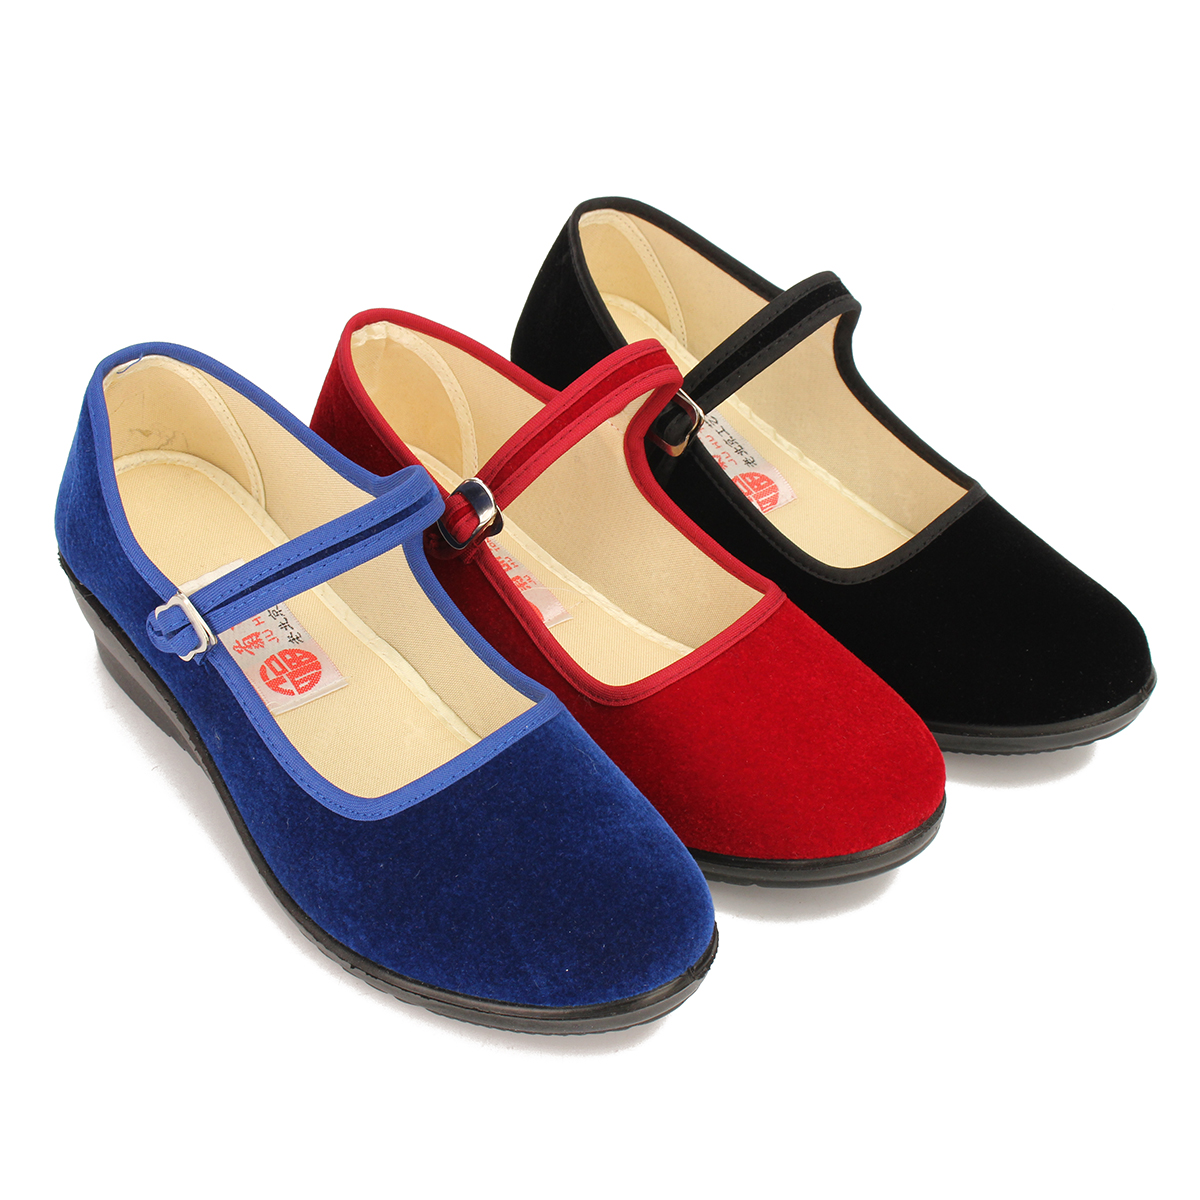 Women-039-s-Mid-Wedge-Heel-Mary-Jane-Hotel-Work-Strap-Ballet-Cotton-Buckle-Shoes thumbnail 5